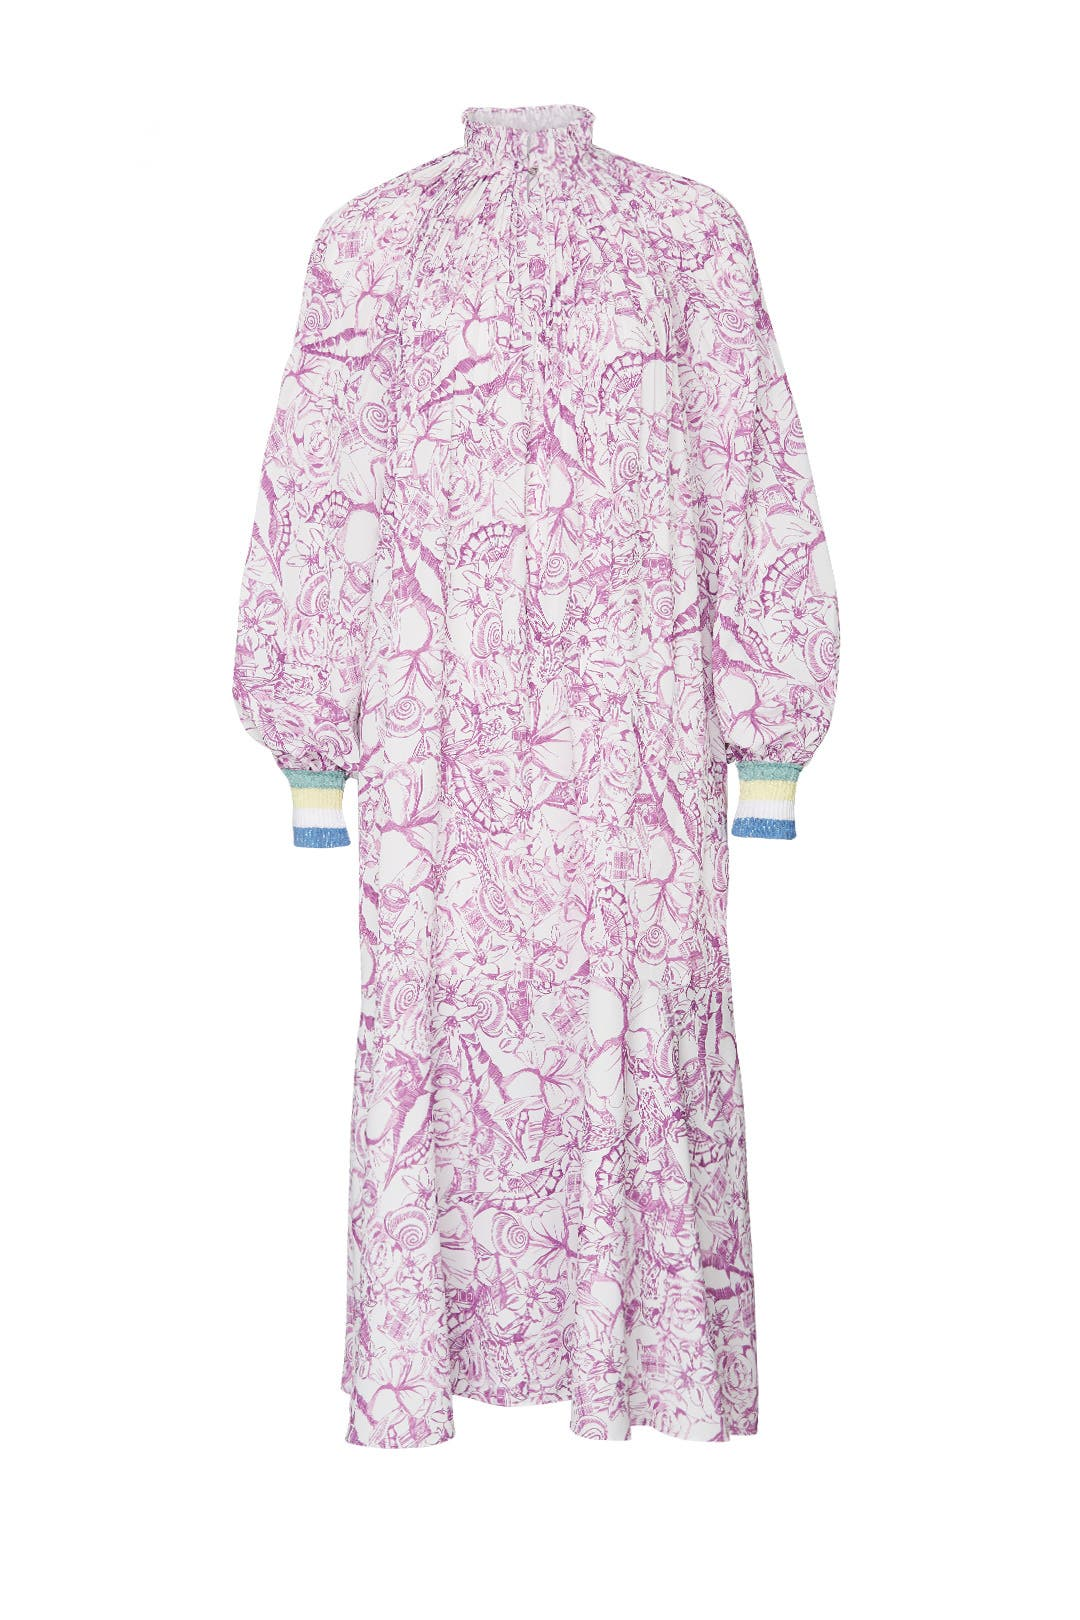 ee8bb83baa7 Tibi. Read Reviews. Isa Toile Edwardian Dress